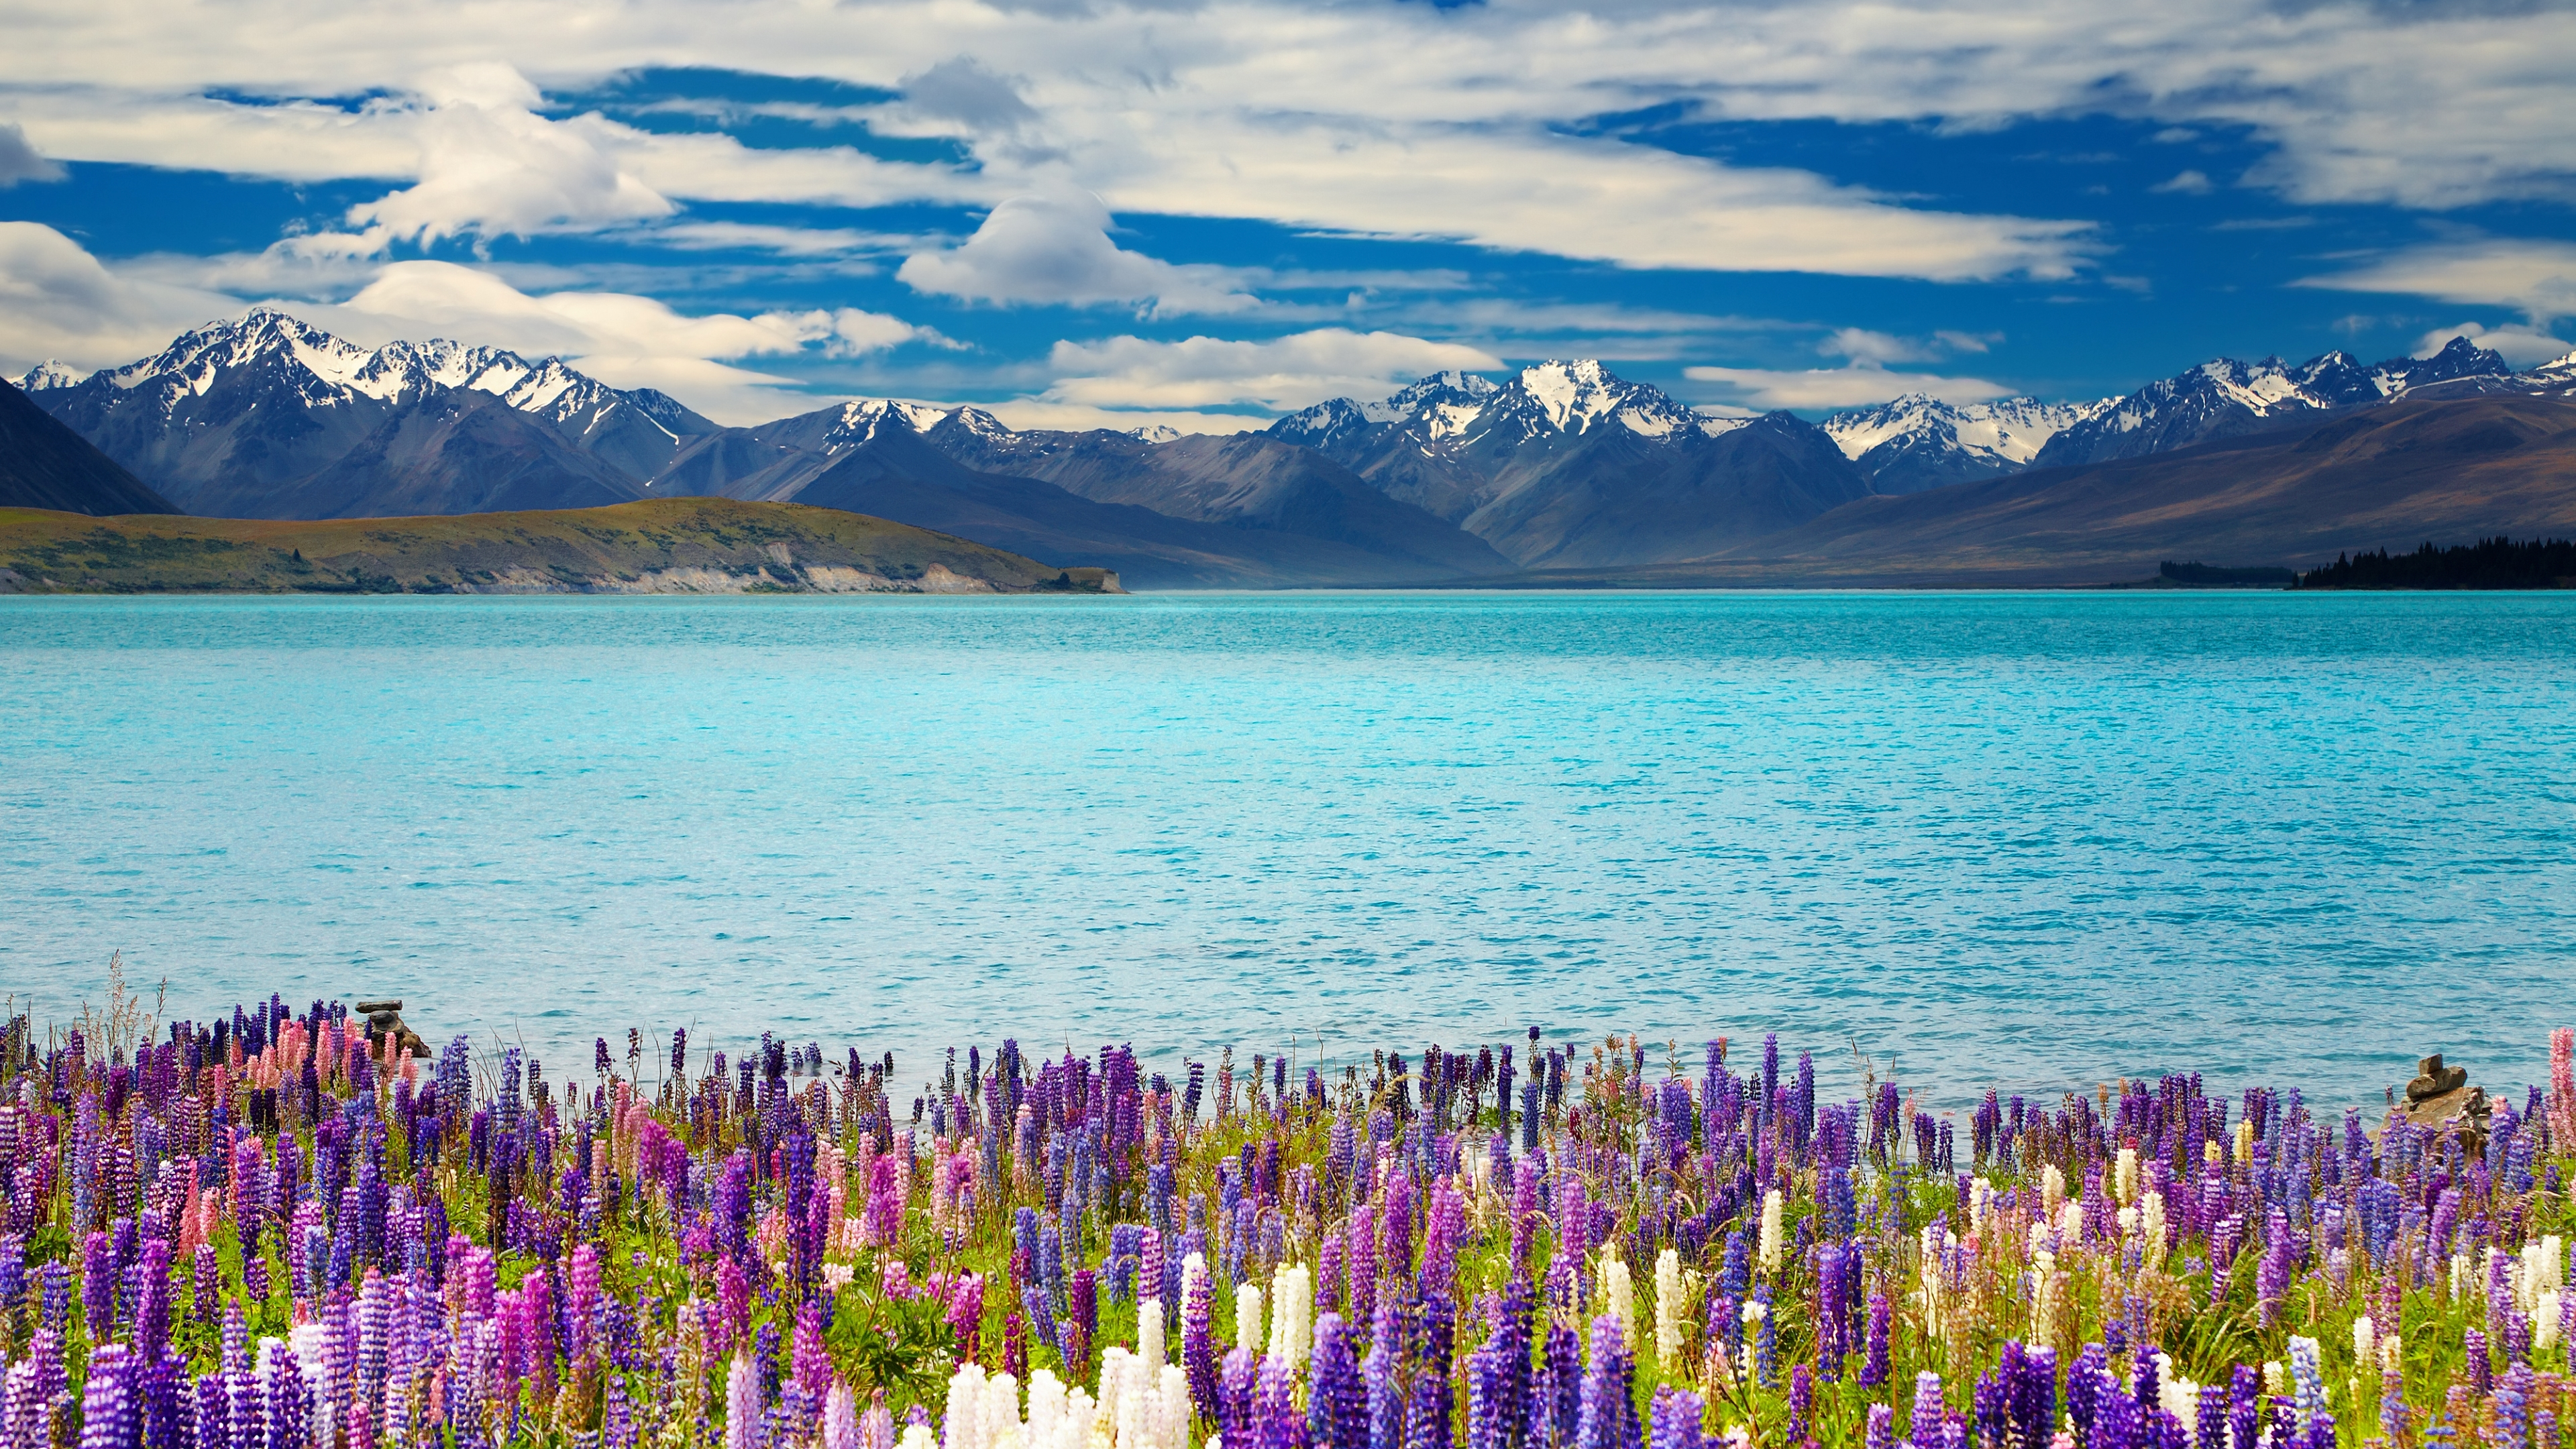 Zealand Lake Tekapo Ultra HD 4k Wallpaper 3840x2160   HD Wallpapers 3840x2160